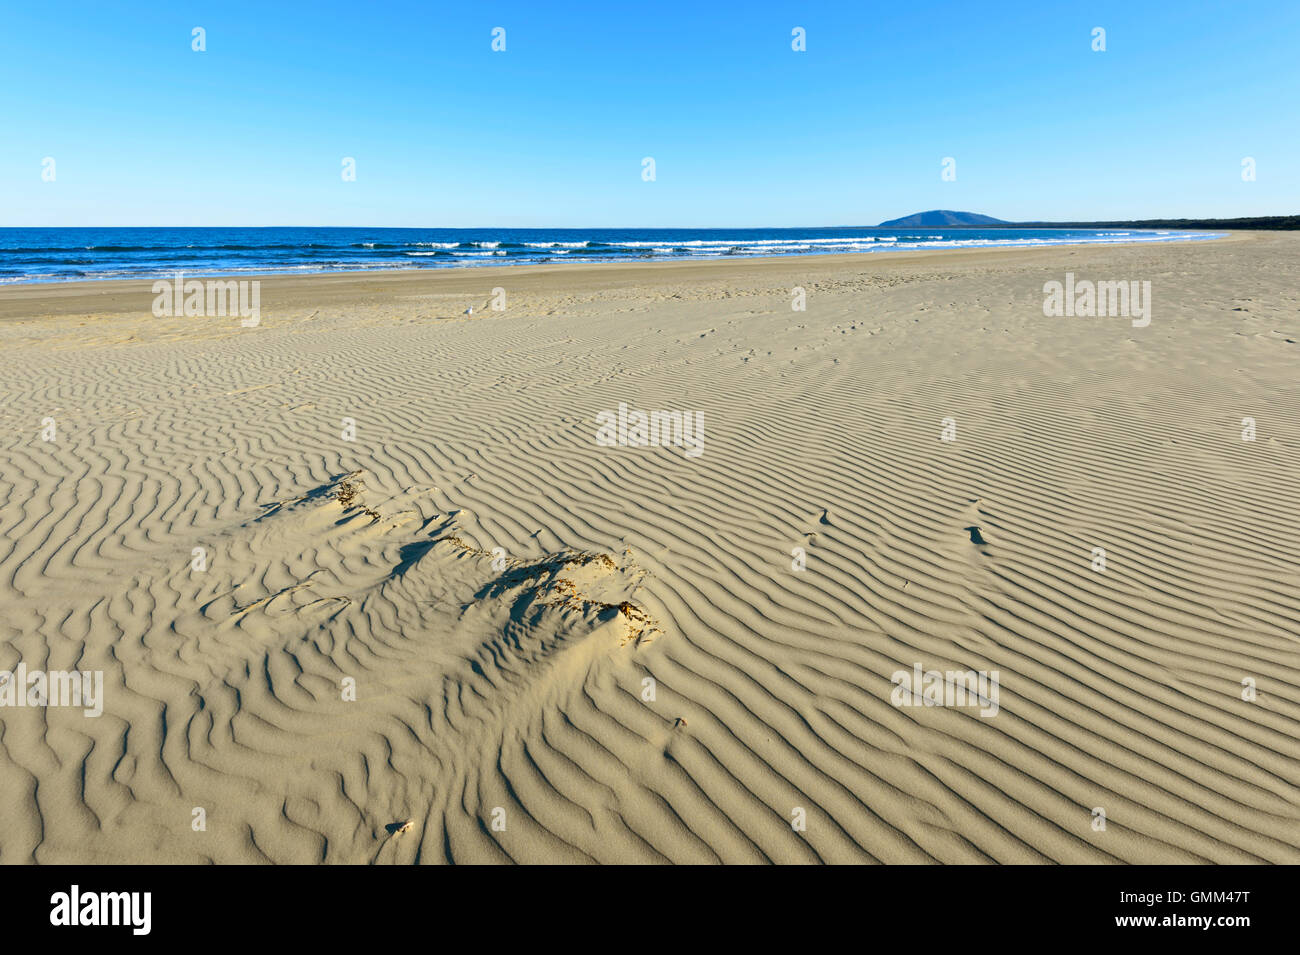 The sandy and deserted beach of Seven Mile Beach at Gerroa, Illawarra Coast, New South Wales, NSW, Australia - Stock Image